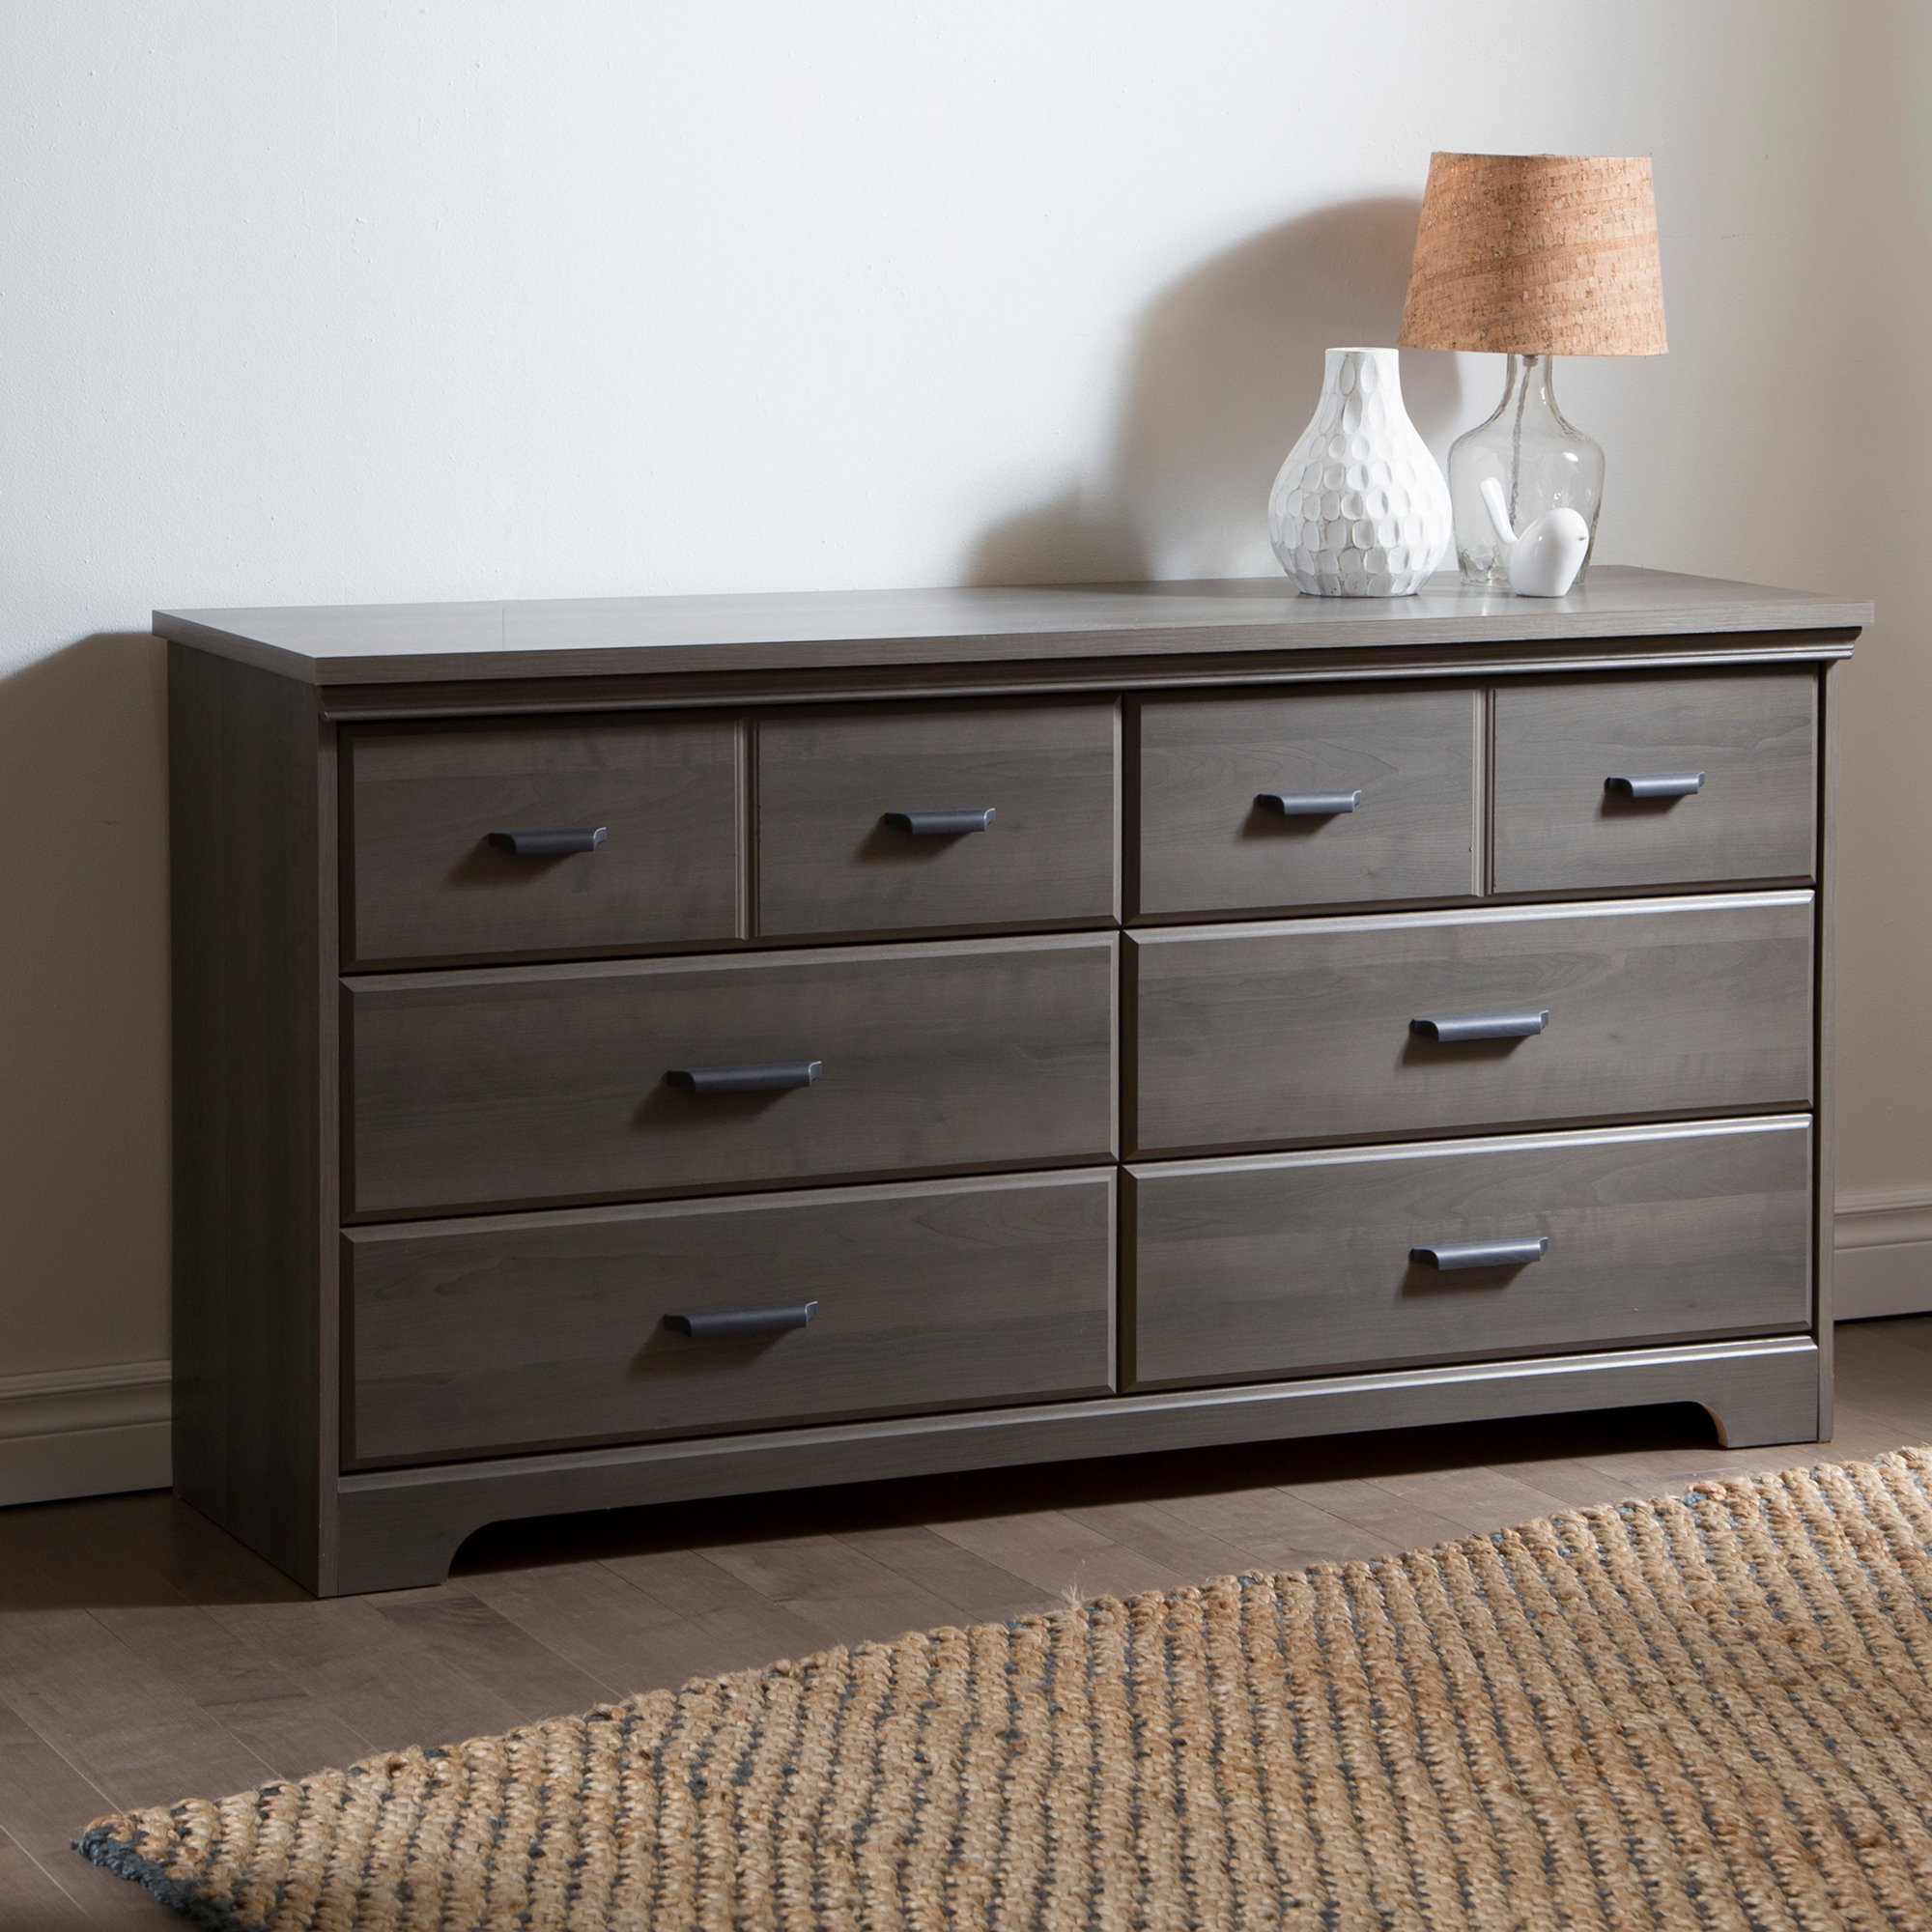 South Shore Versa Collection 6-Drawer Double Dresser, Gray Maple with Antique Handles